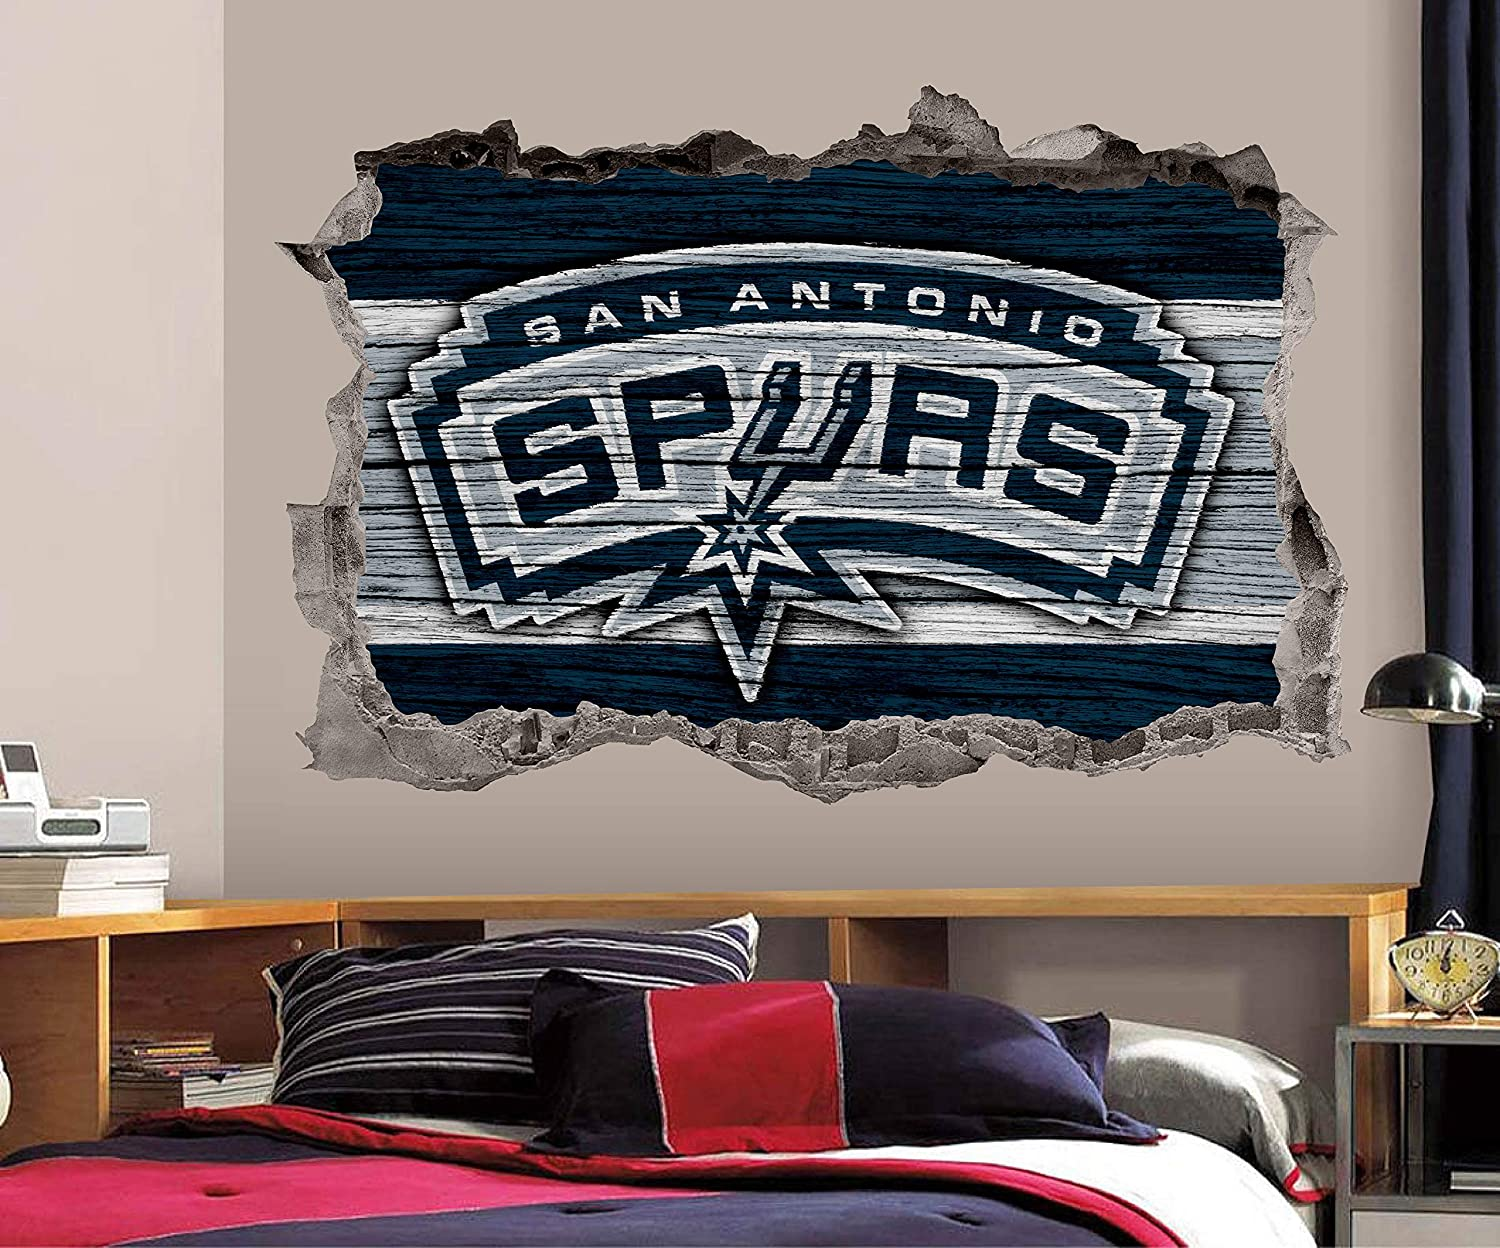 Basketball San Antonio Team Wall Decals Art 3D Smashed Custom Fan Spurs Wall Decor Bedroom Garage Removable Vinyl Wall Stickers Gift WL205